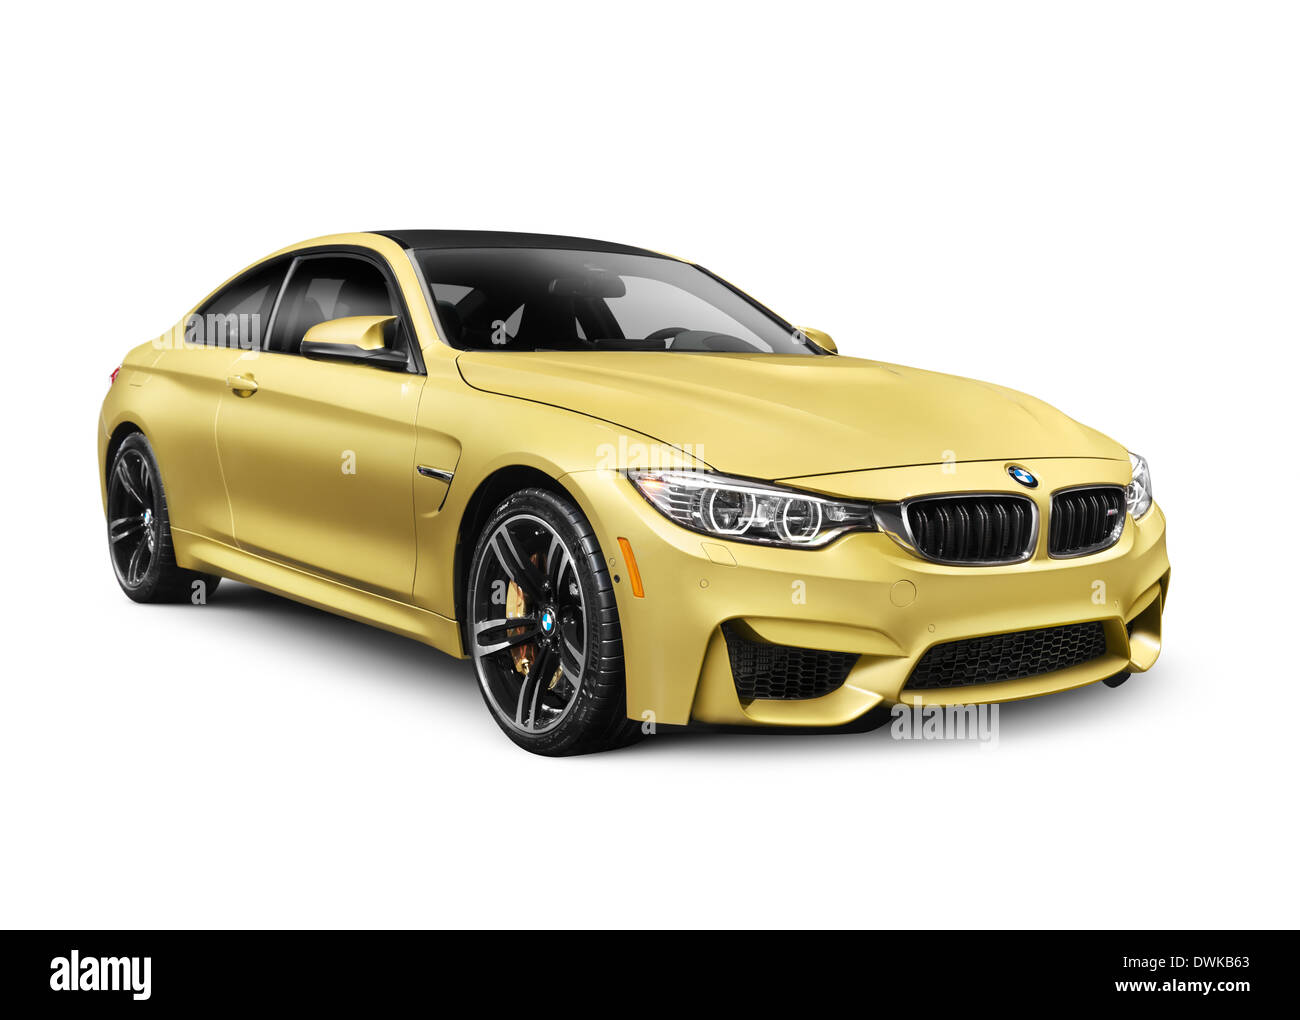 Gold 2015 BMW M4 Coupe performance car isolated on white background - Stock Image